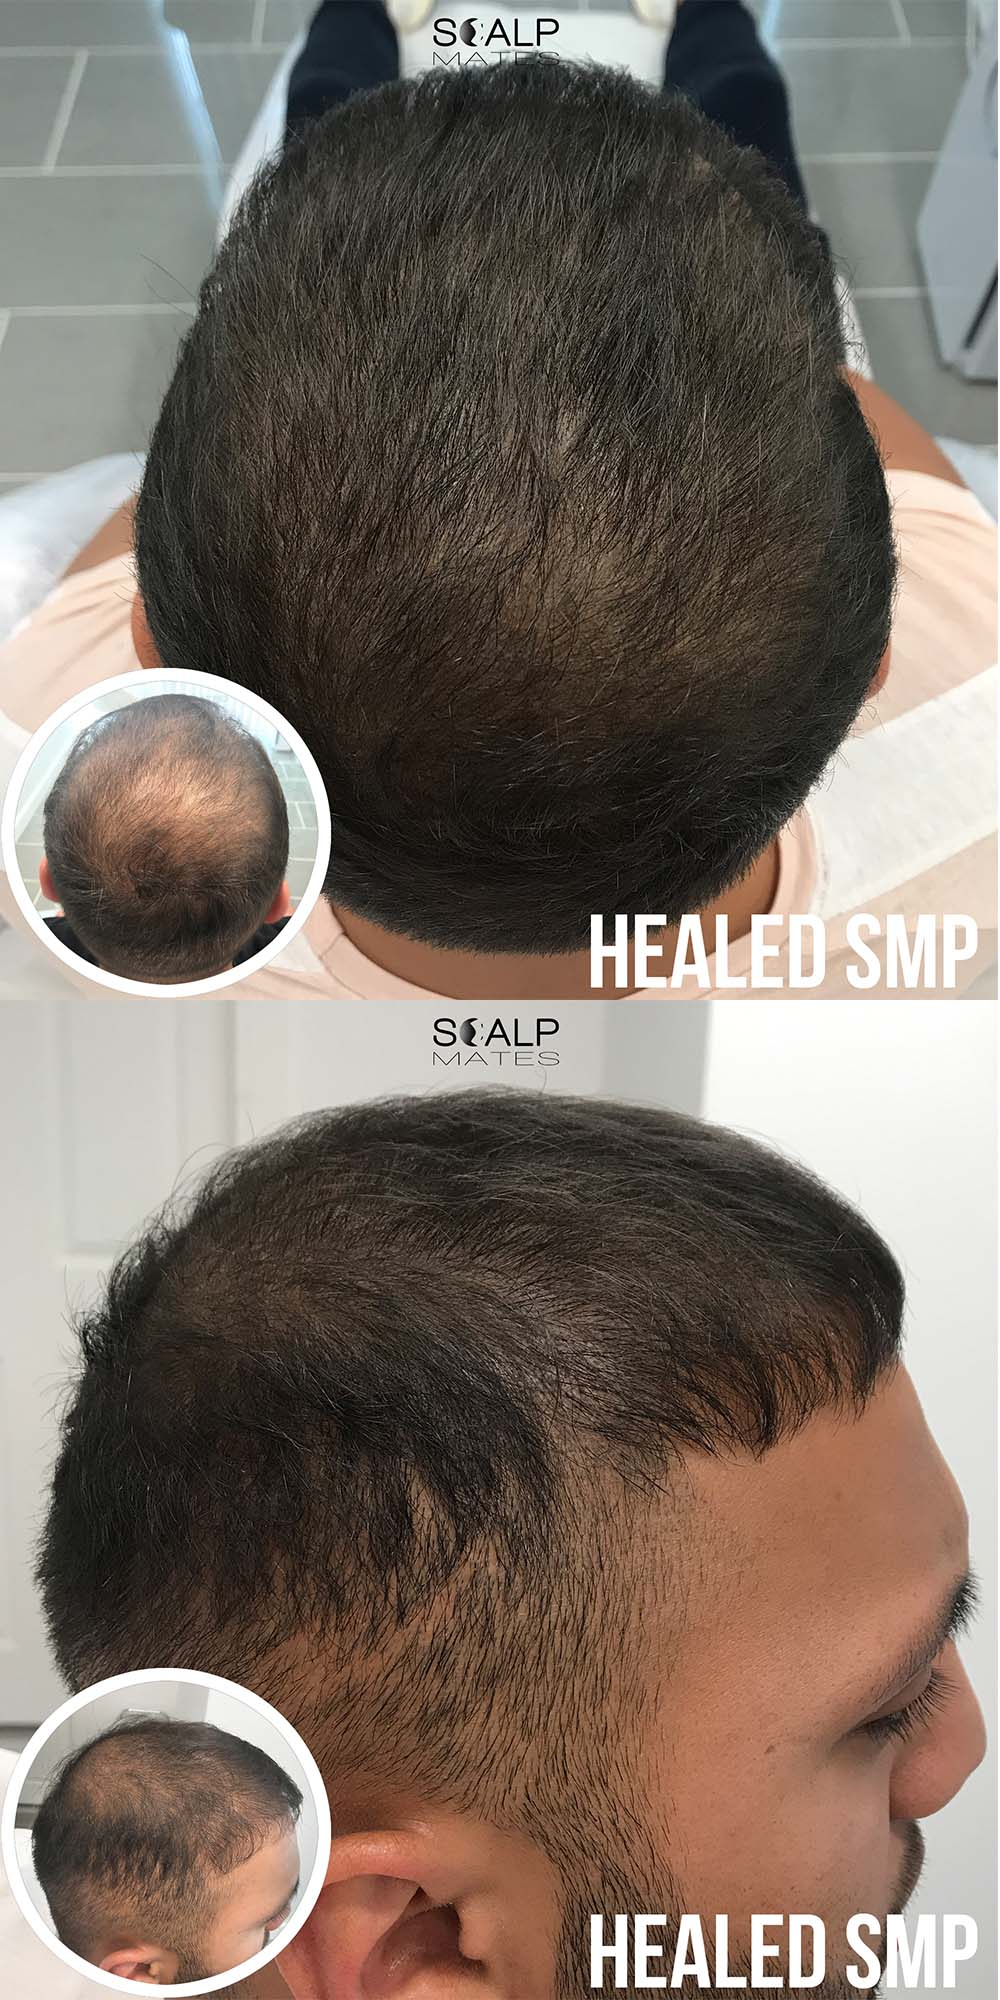 hair tattoo on head in Birmingham, before and after Scap micropigmentation smp for hair thinning in men, add density to thin hair at Scalp Mates in Kings Heath, Birmingham, UK